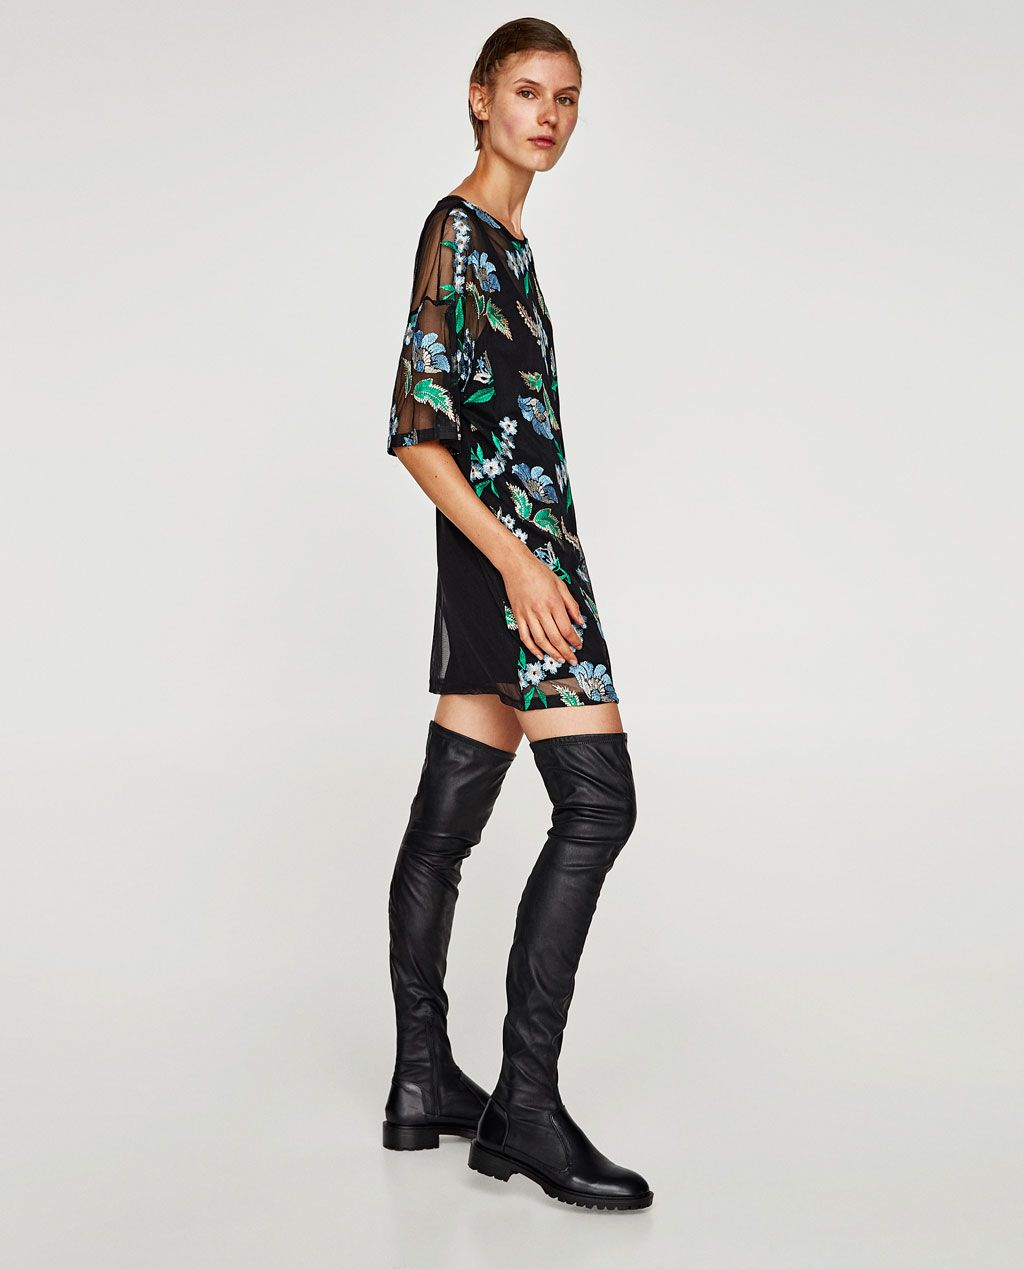 Contrast lace dress zara  Image  of DRESS WITH FLORAL EMBROIDERY from Zara  Embr  Pinterest